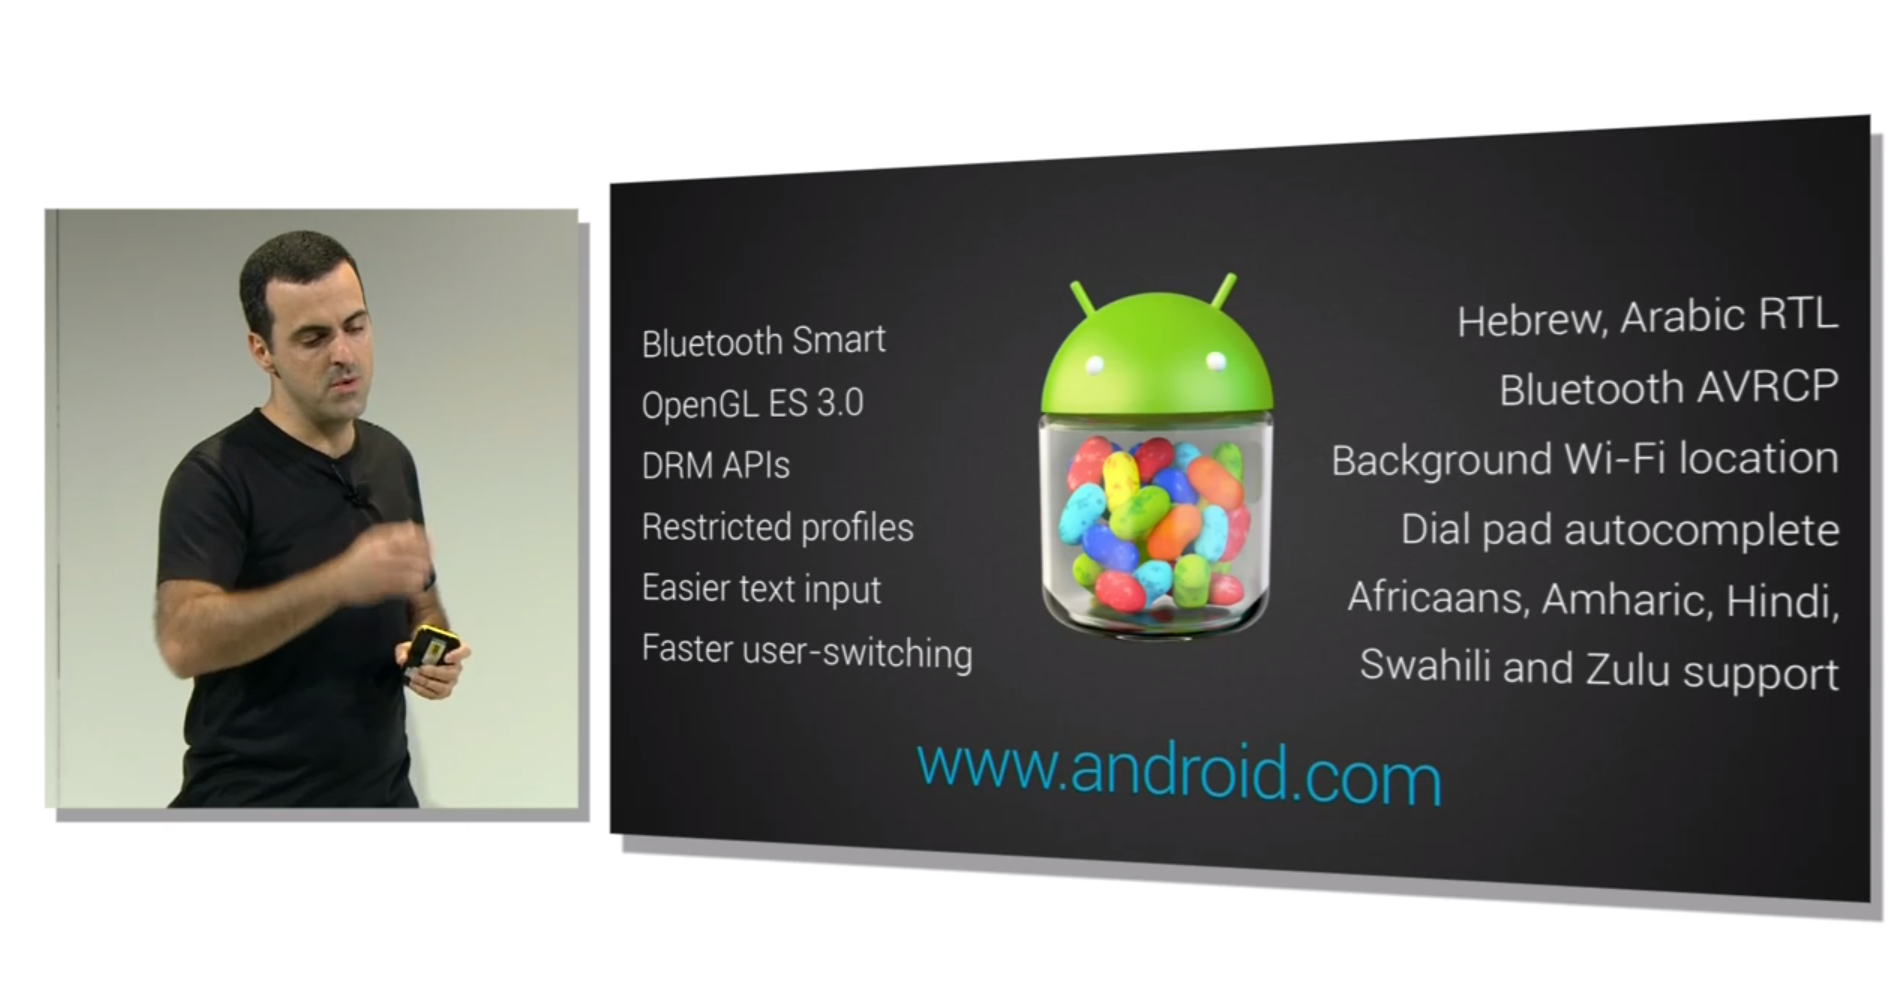 Android 4.3 Specs